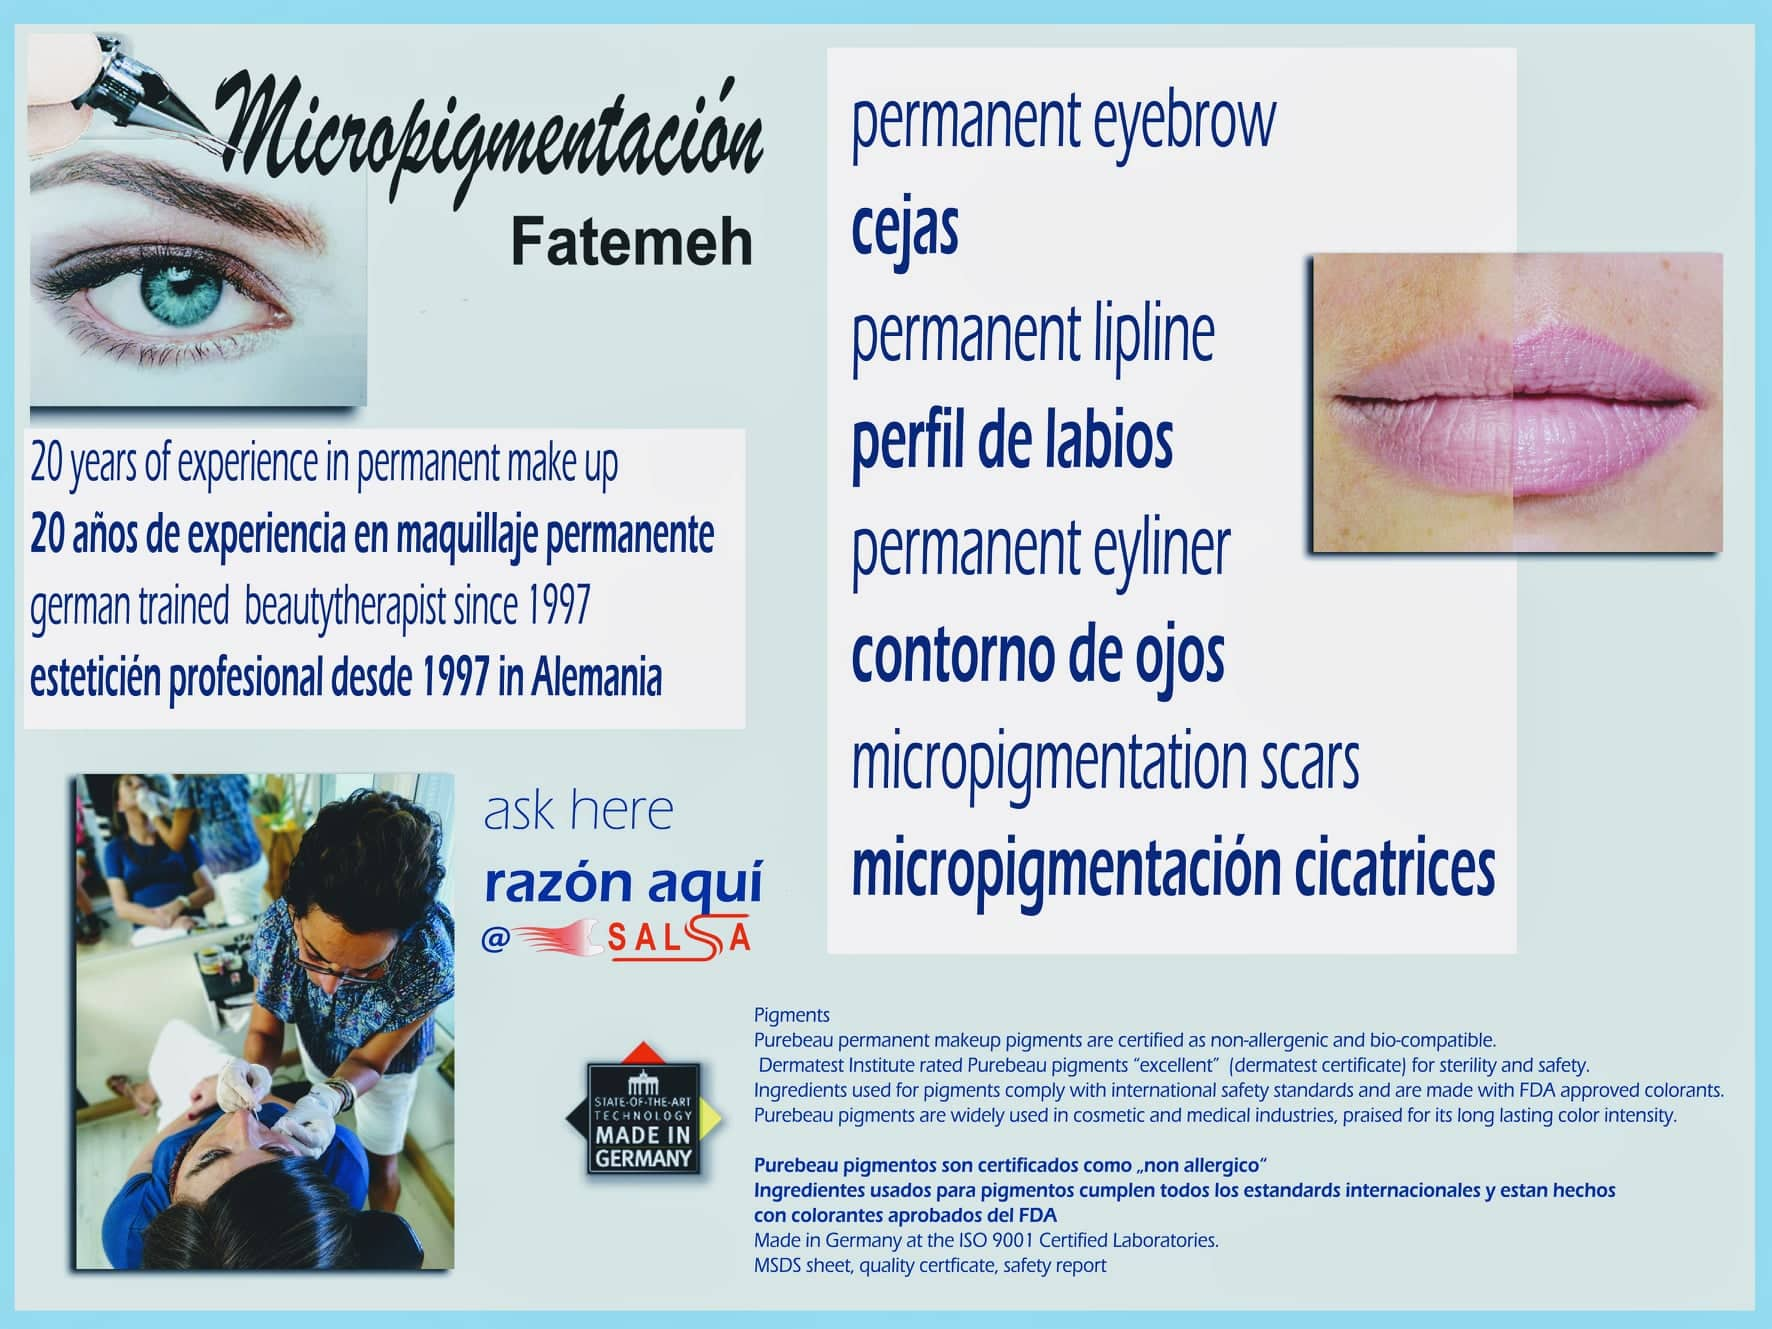 micropigmentation eyebrows, lips and more